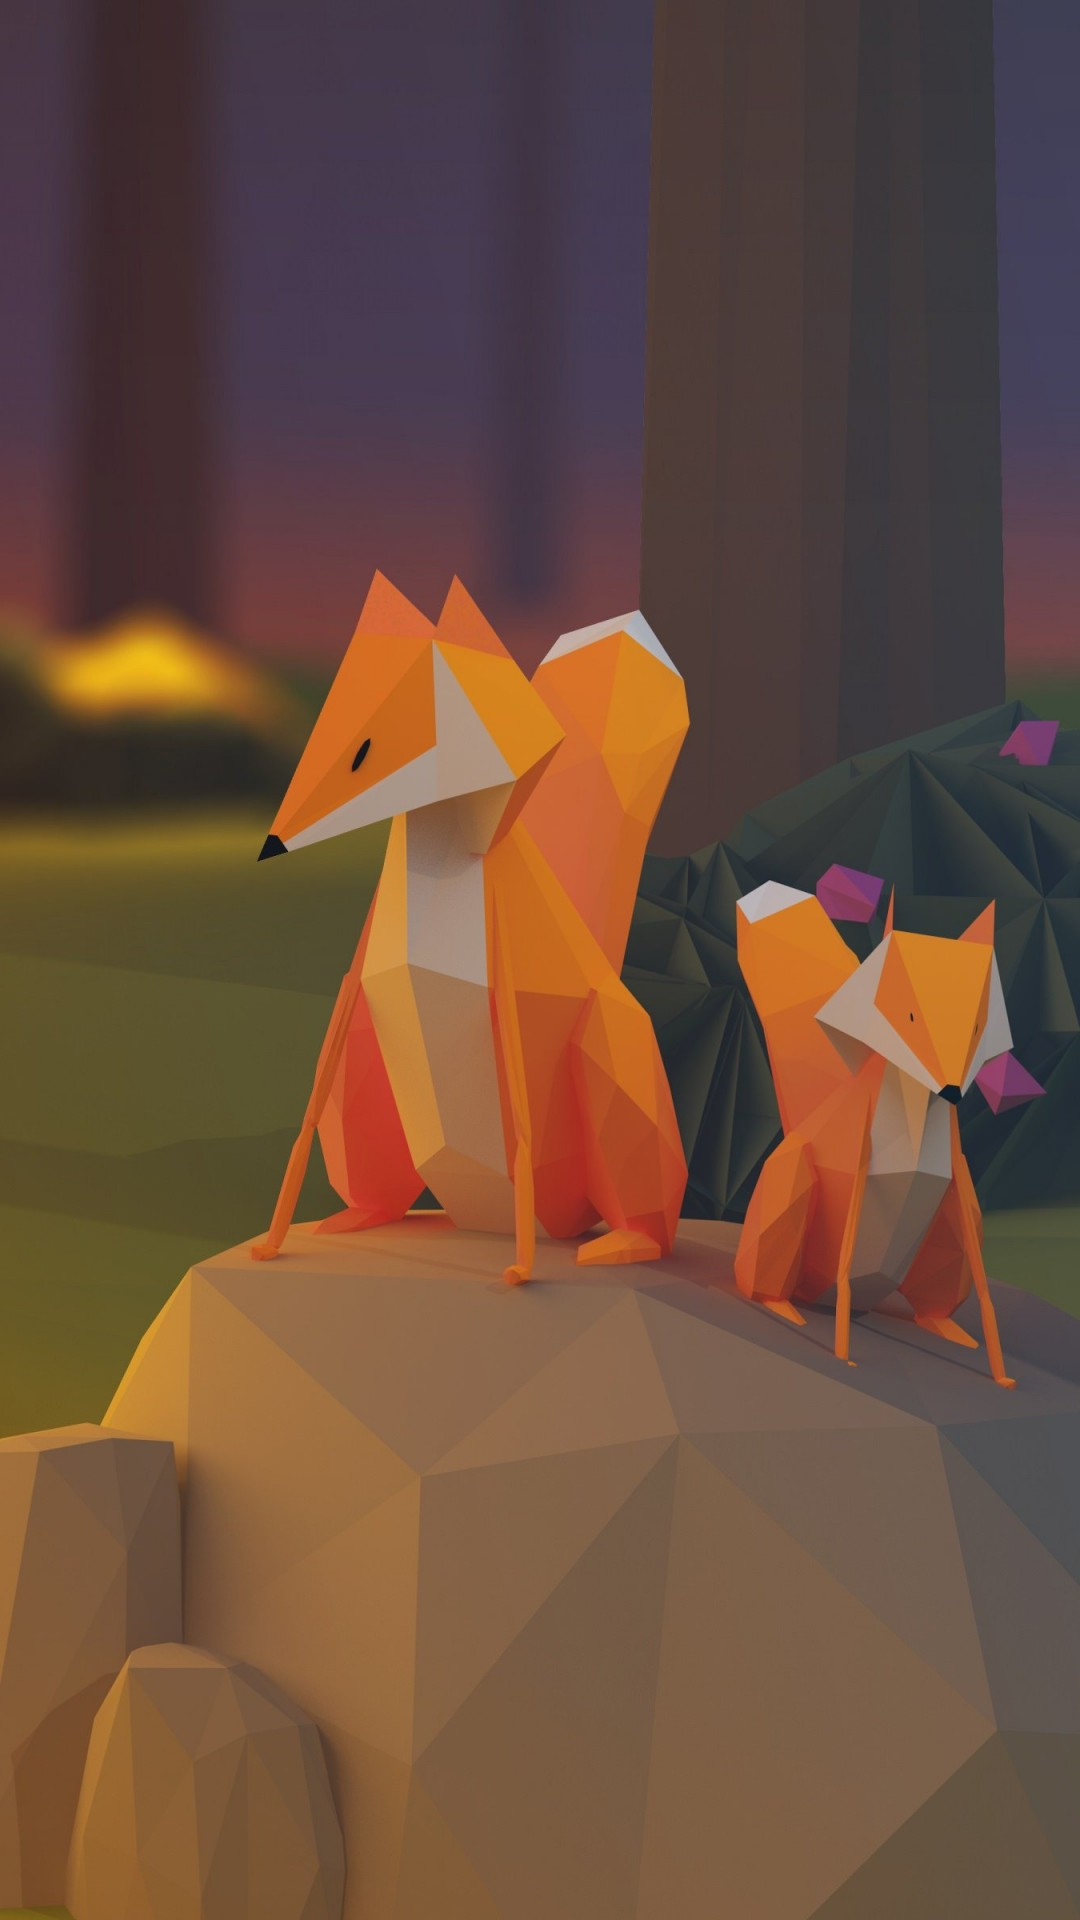 Low Poly Foxes Wallpaper for Motorola Moto X